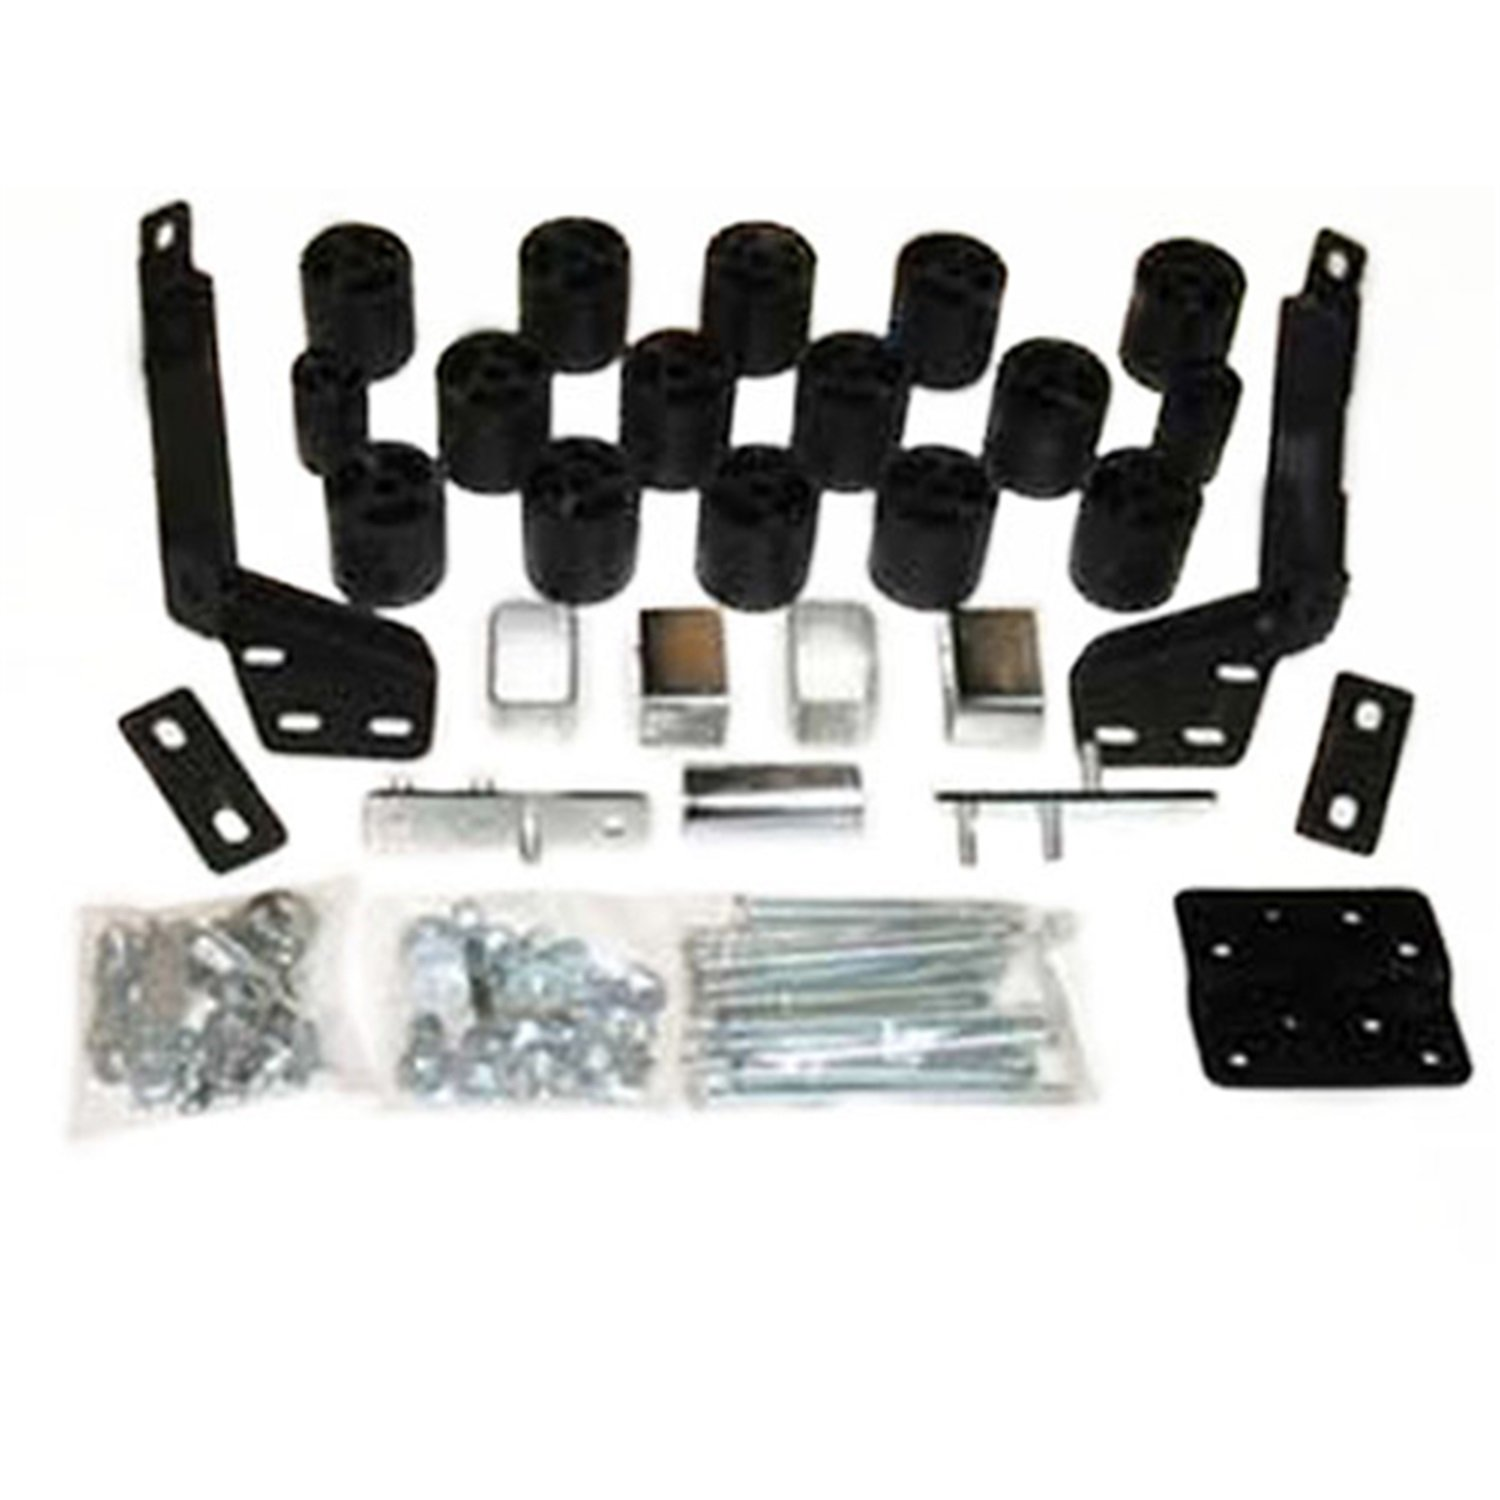 """Performance Accessories, Dodge Ram Non Sport 3"""" Body Lift Kit, fits 2000 to 2001, PA60073, Made in America"""